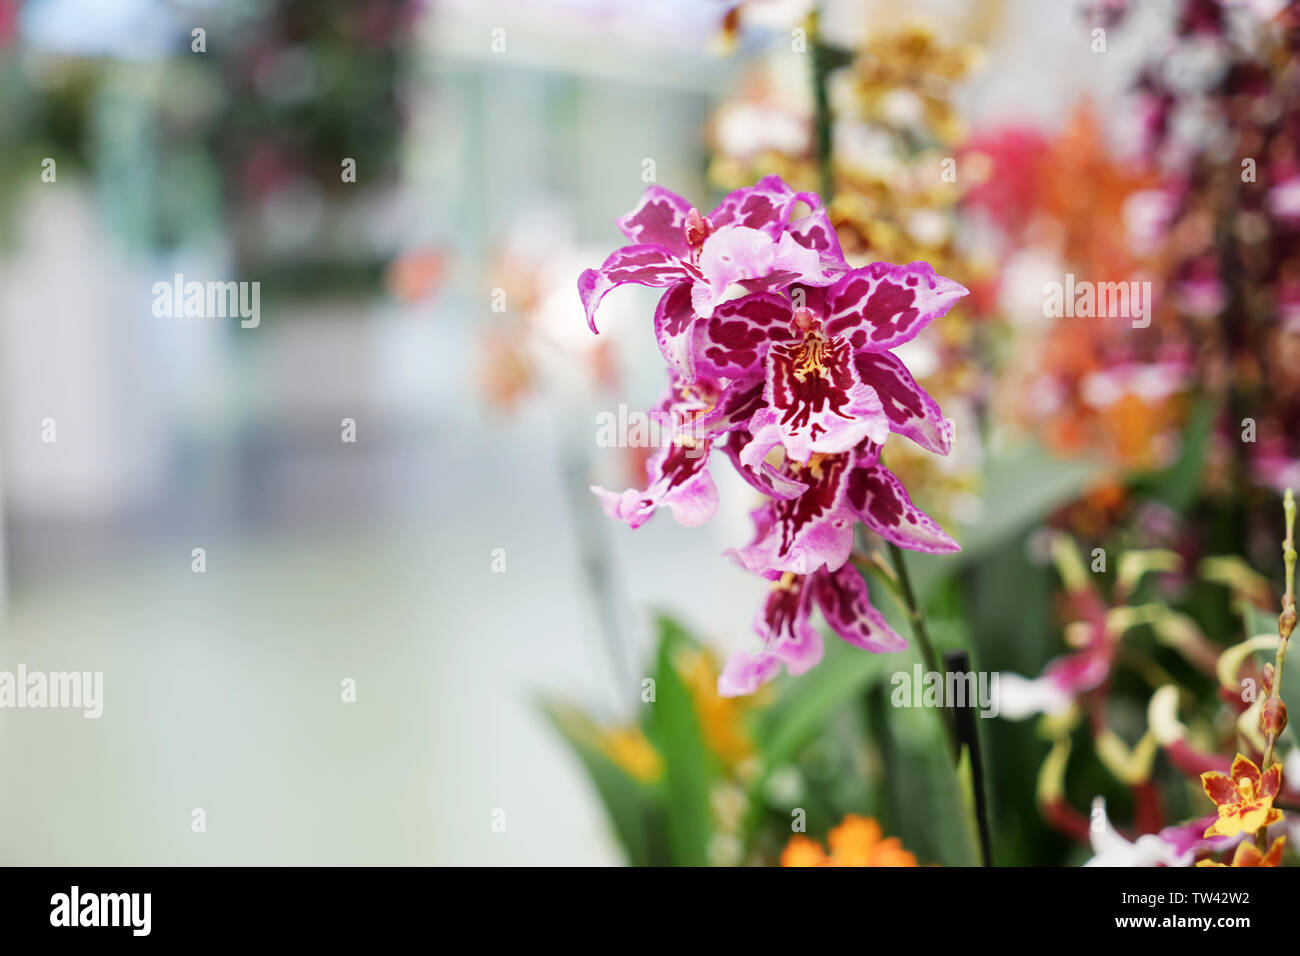 Beautiful blooming orchid on blurred background - Stock Image